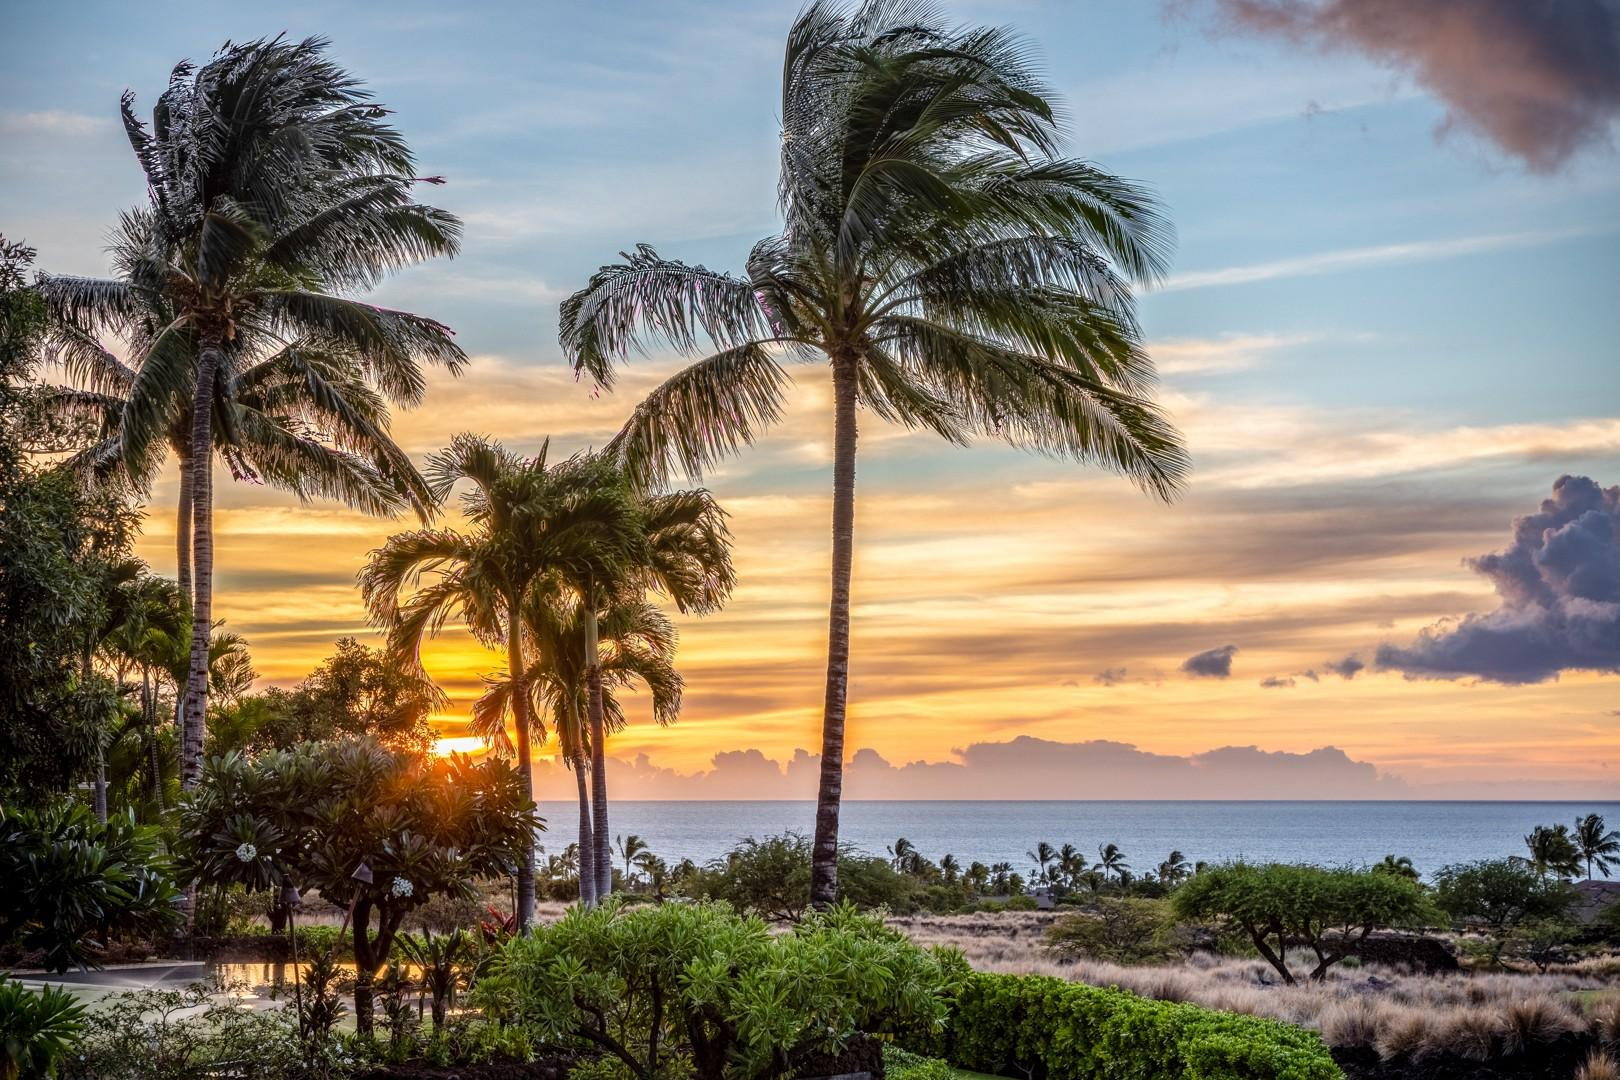 Enjoy breathtaking sunsets from your own private oasis in paradise.